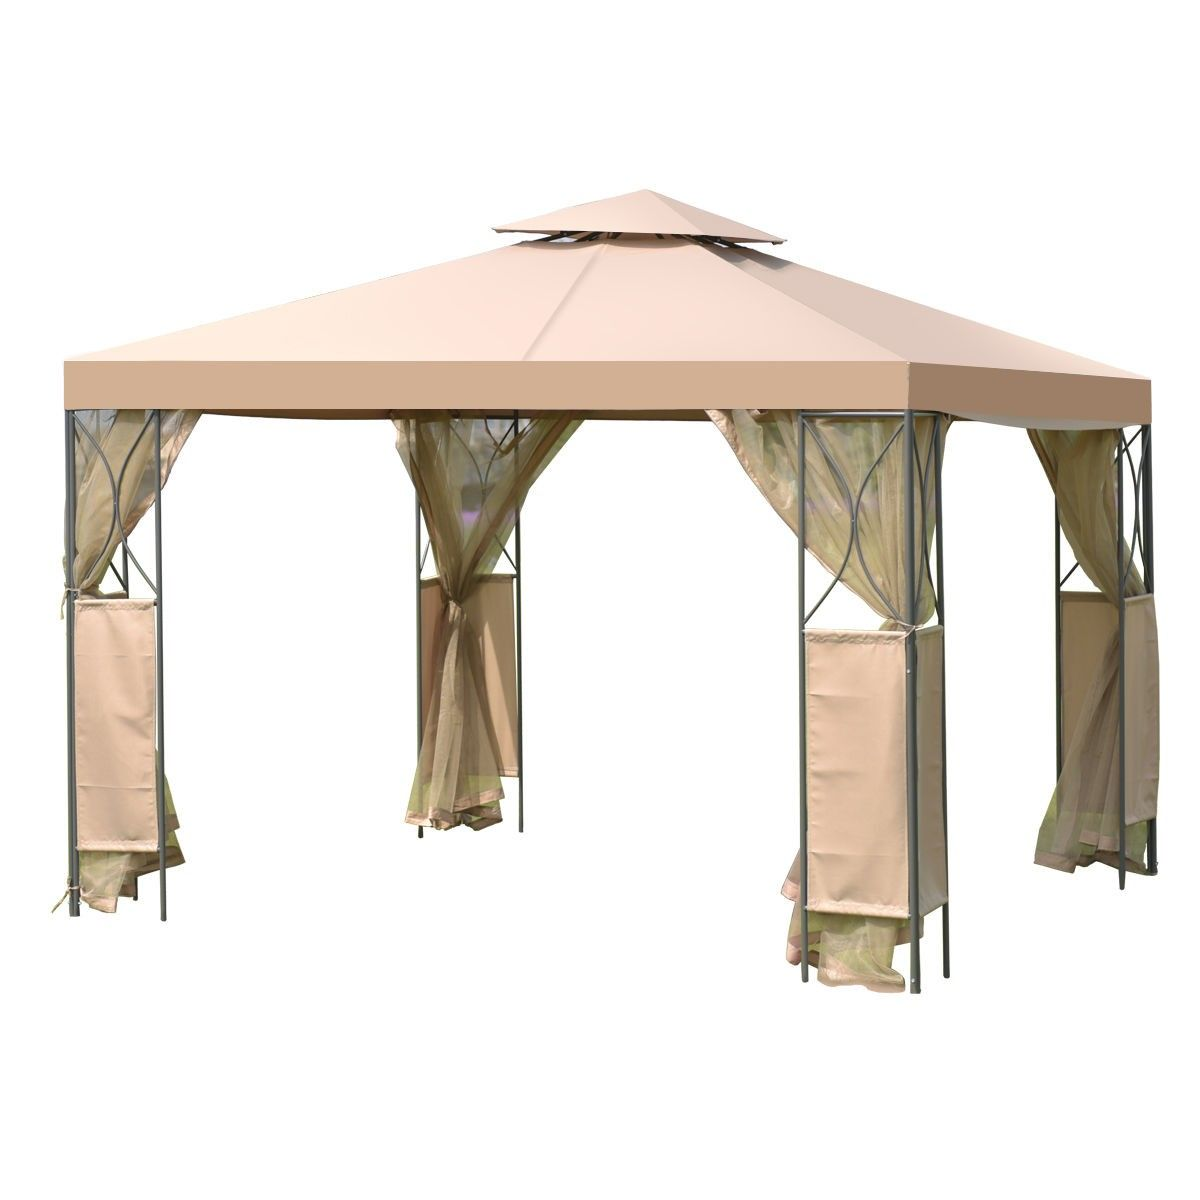 10 X10 Pop Up Mesh Mosquito Net Sidewalls Pop Up Canopy Tent Canopy Tent Instant Canopy